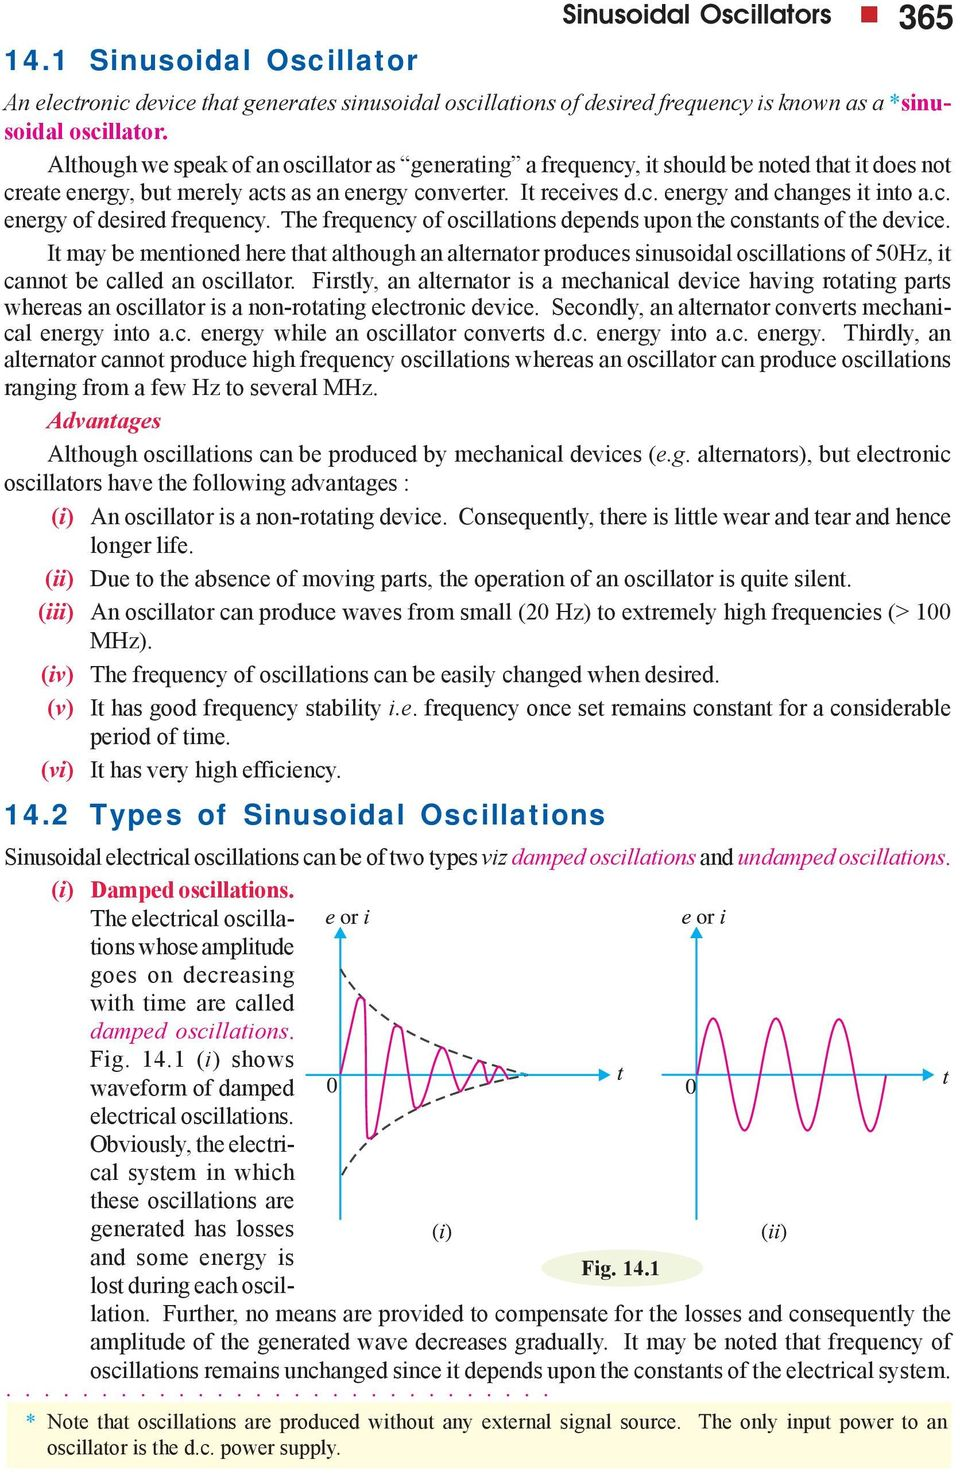 c. energy of desired frequency. The frequency of oscillations depends upon the constants of the device.